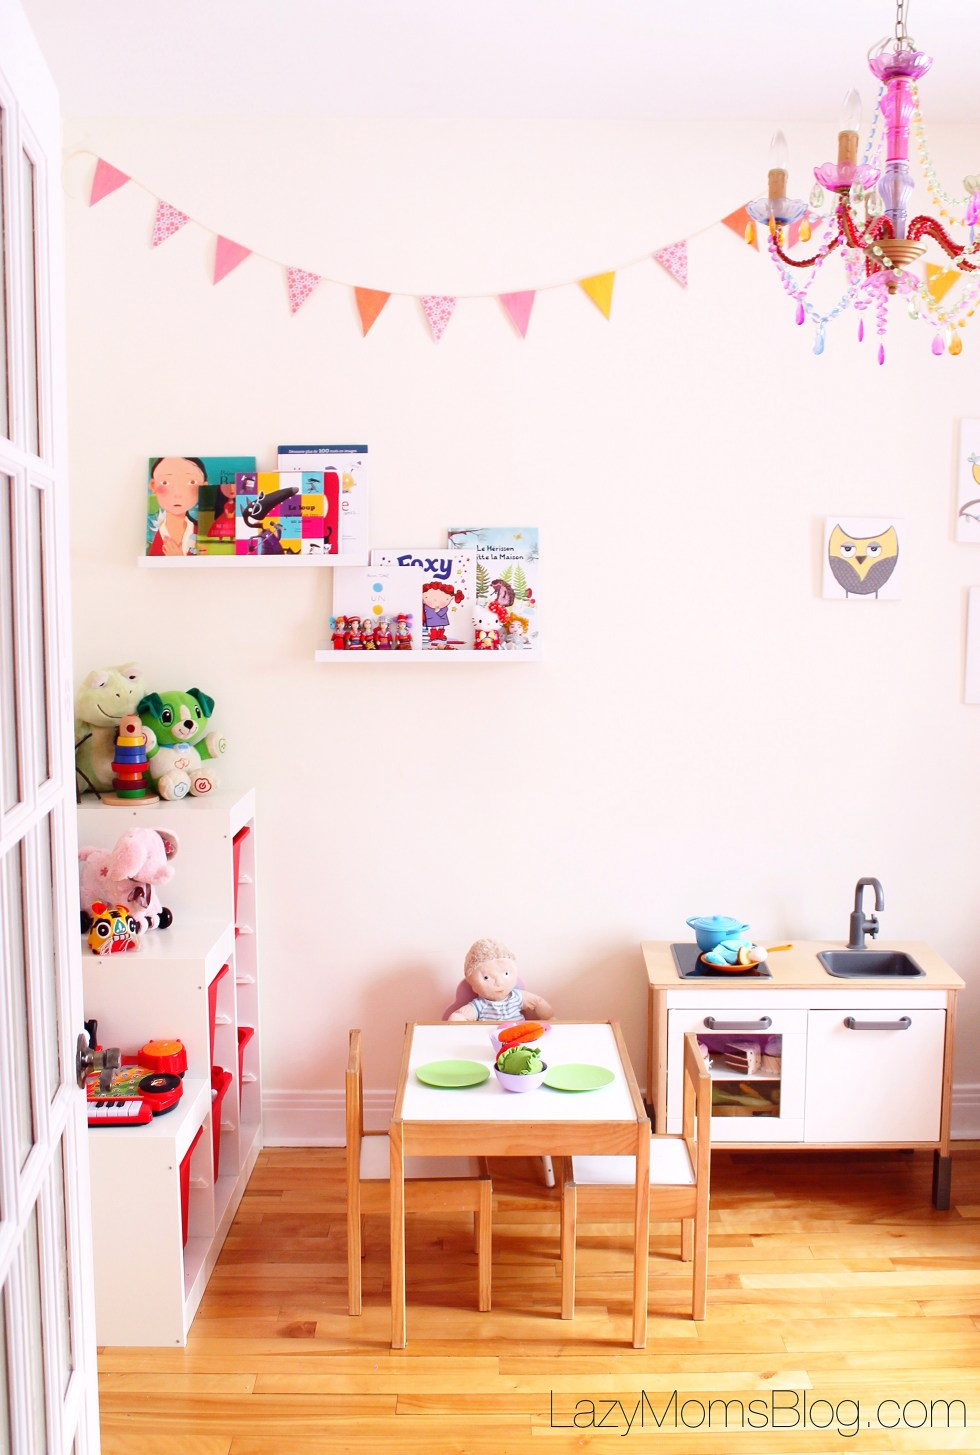 Tried tips and tricks for encouraging independent play #parenting #playroom